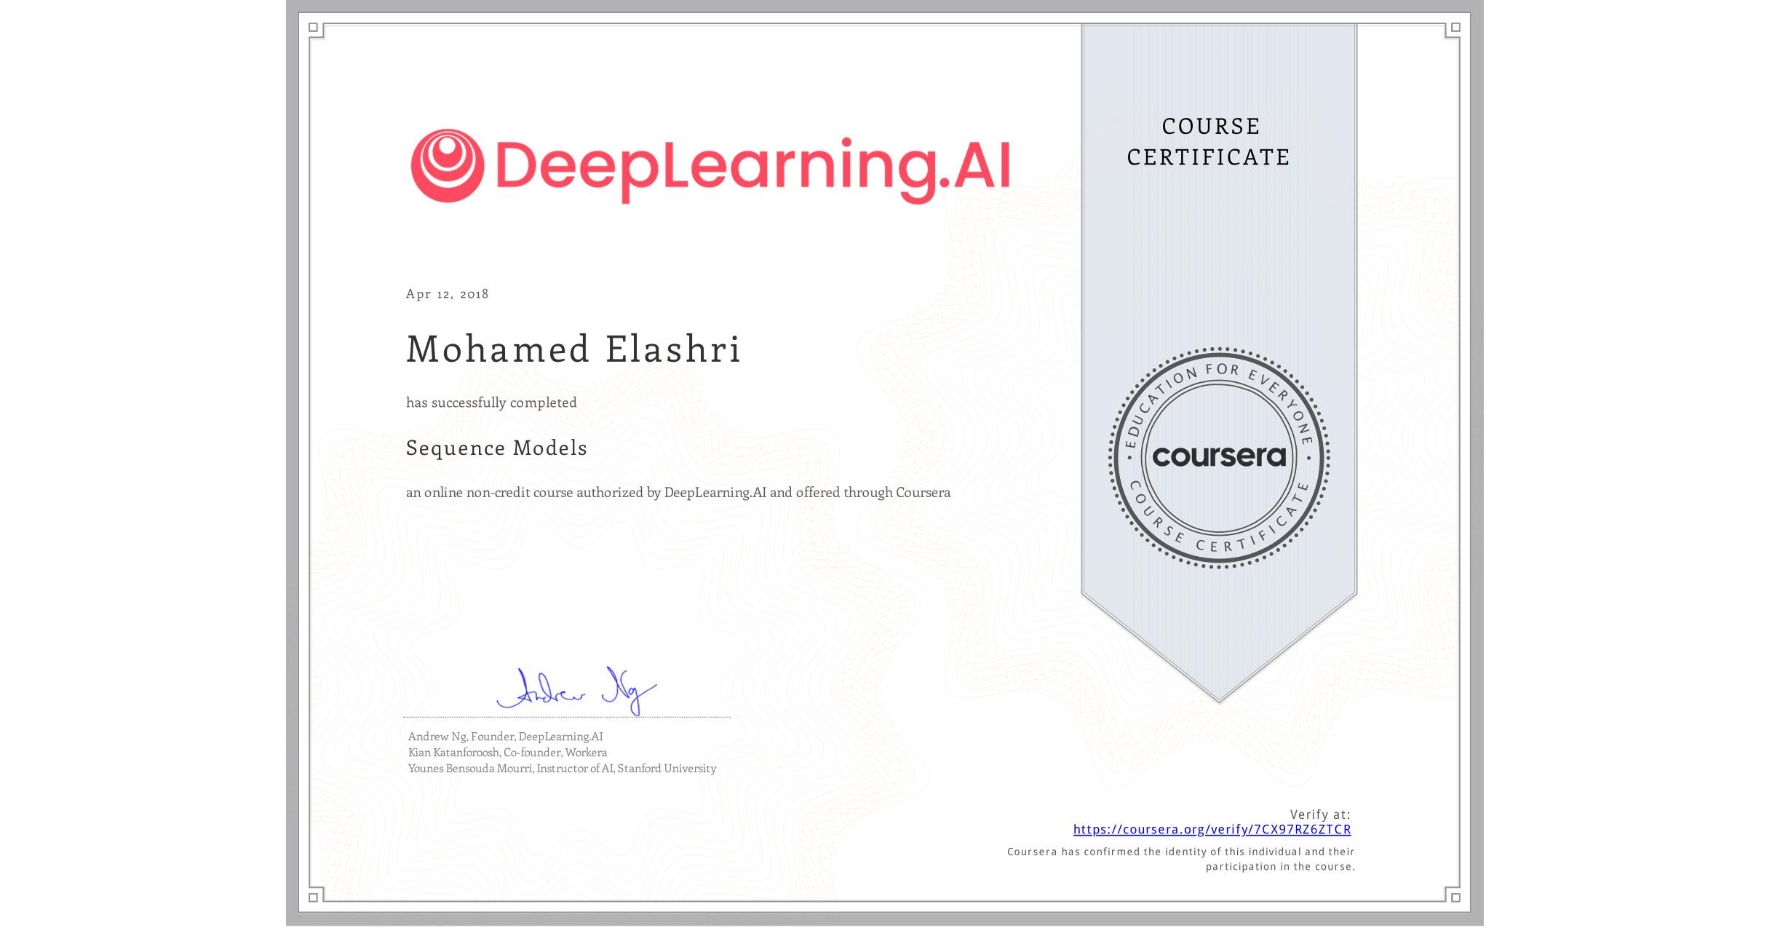 View certificate for Mohamed Elashri, Sequence Models, an online non-credit course authorized by DeepLearning.AI and offered through Coursera